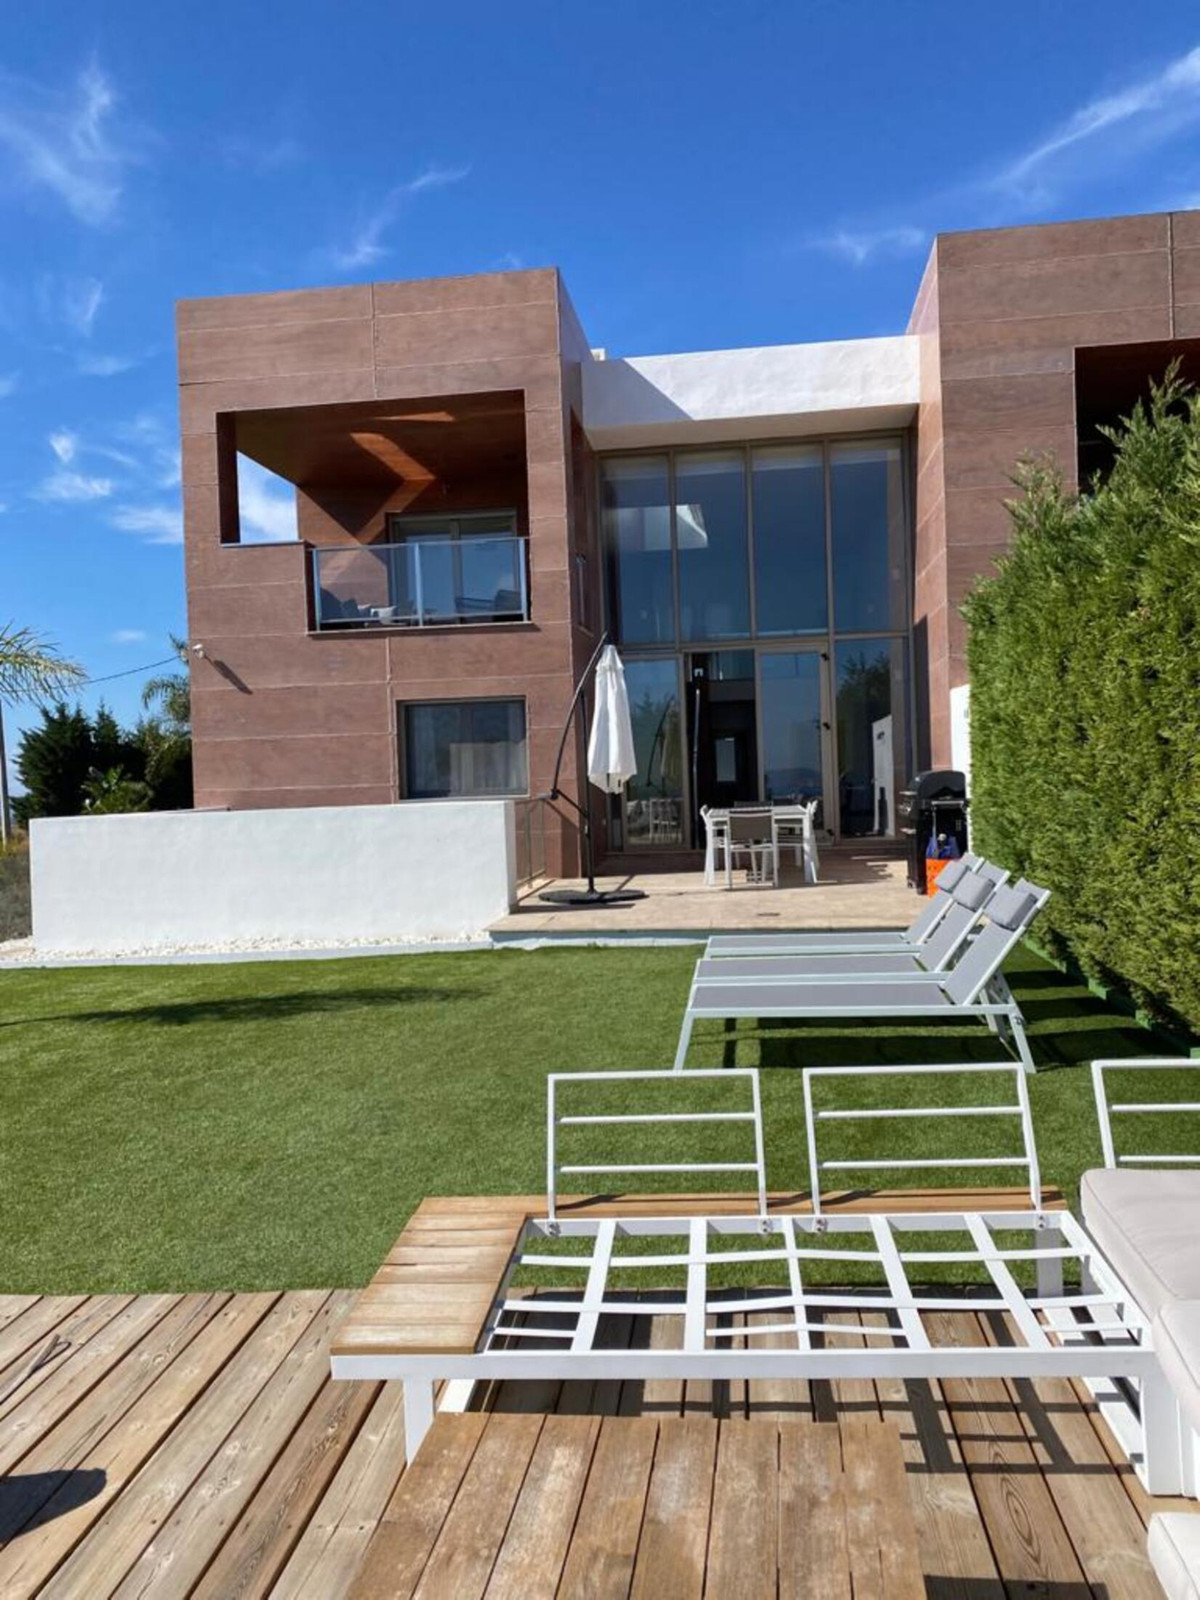 Luxurious 6 bedroom Townhouse for Sale / Rent in Benahavis   Do you wish to live in a place with a m, Spain